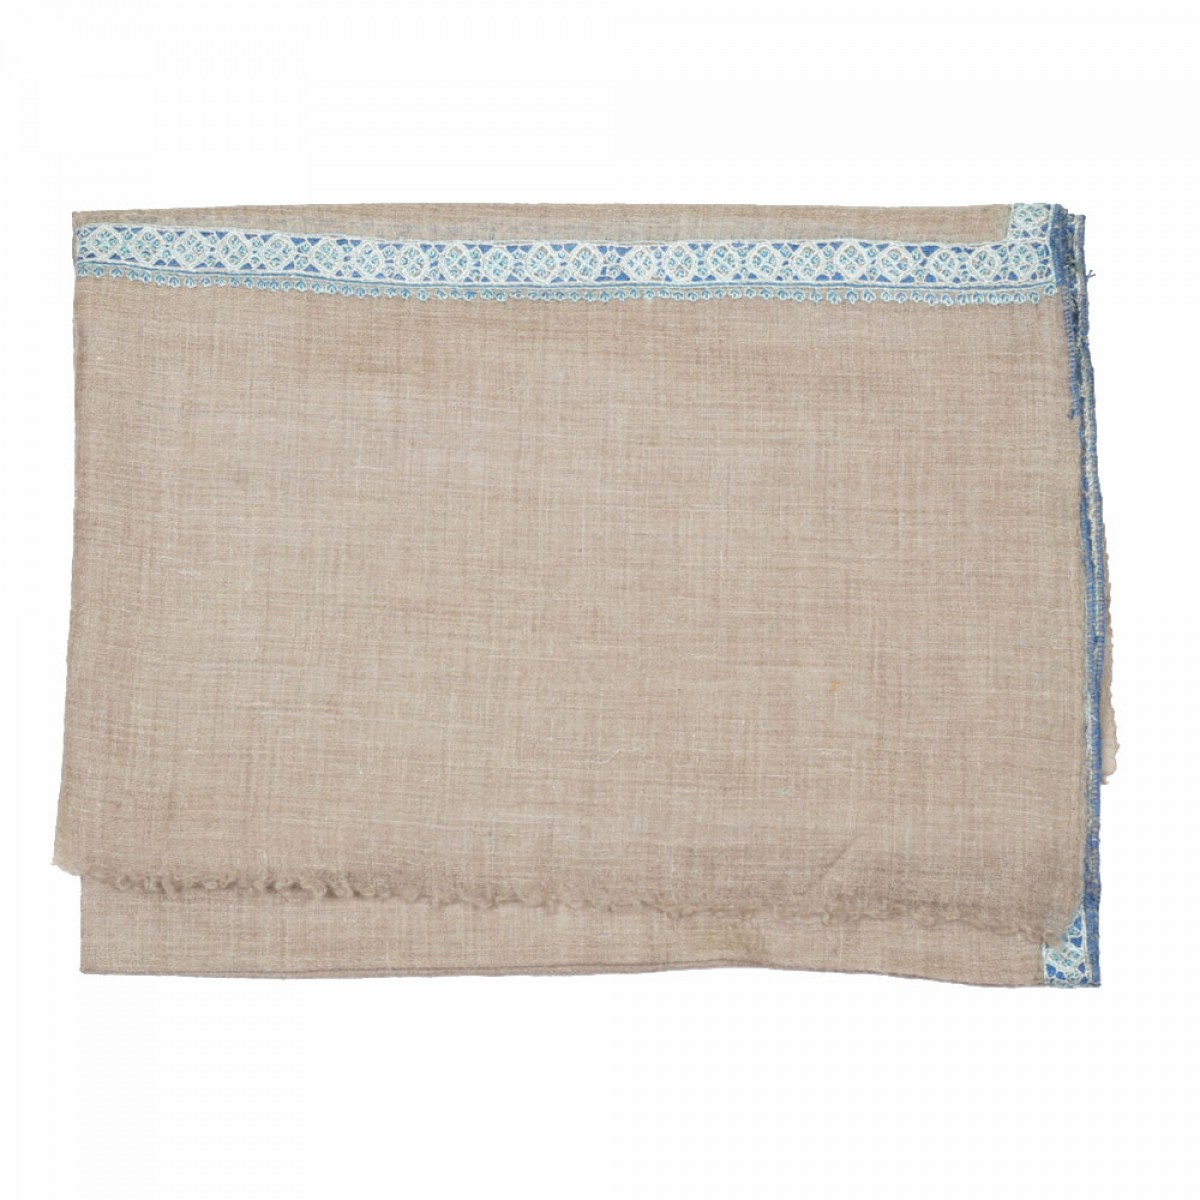 Embroidered Handloom Pashmina Stole - Natural Blue